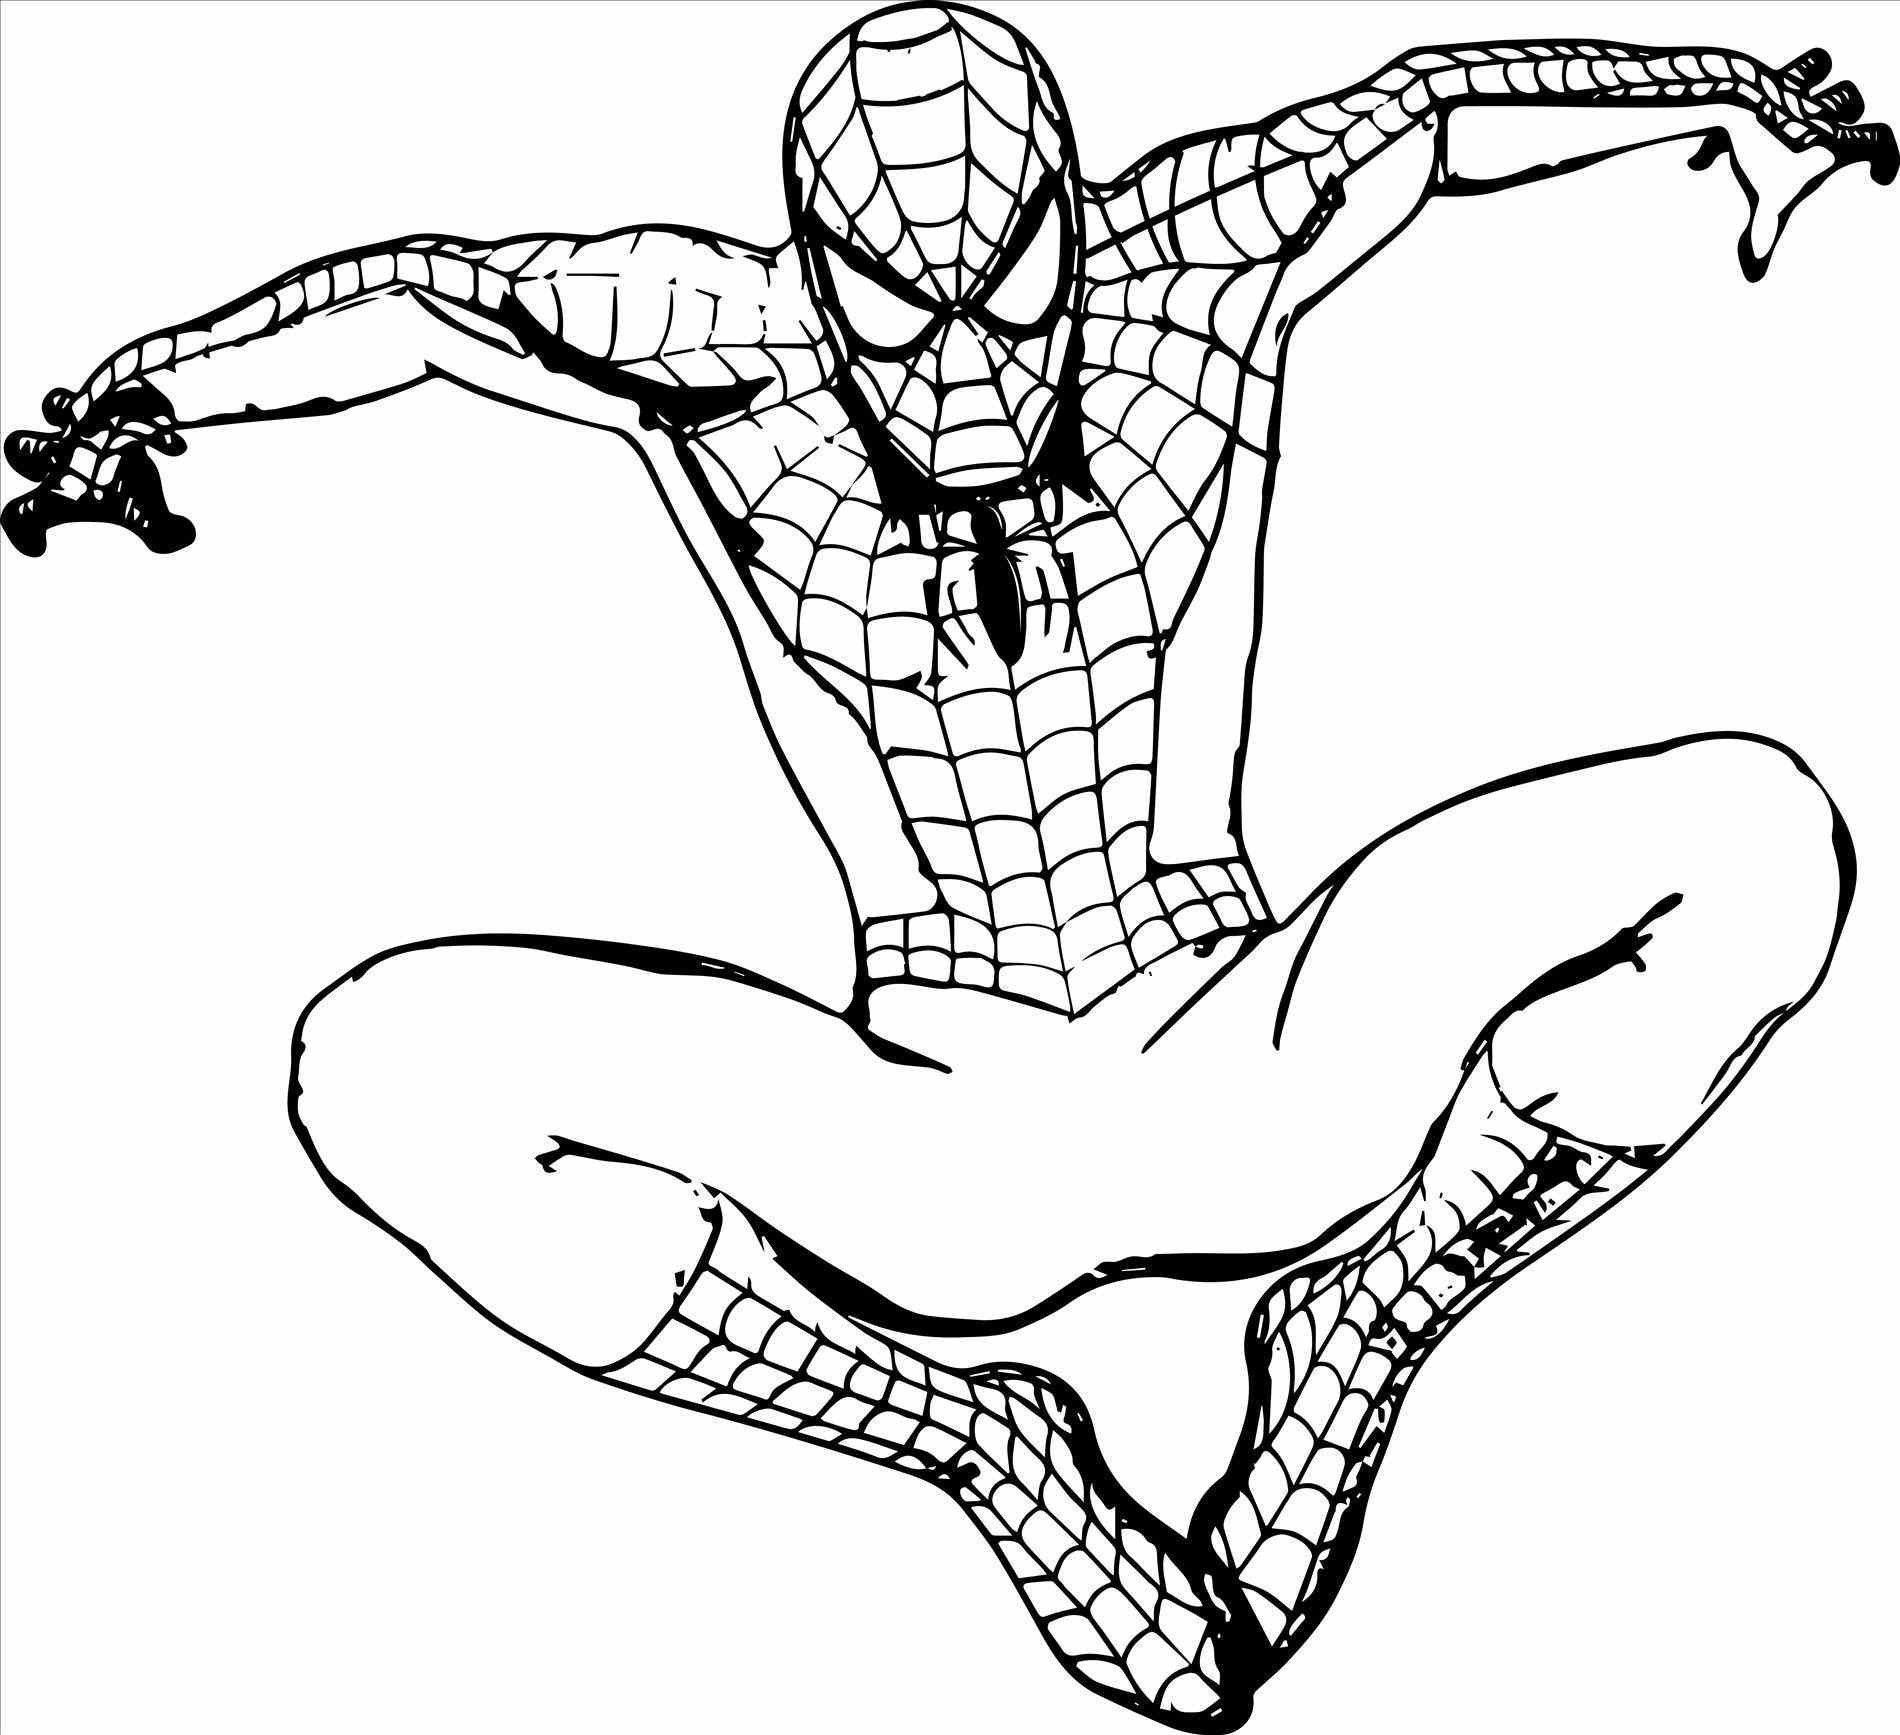 Super Hero Coloring Page Fresh Awesome Coloring Pages Spiderman In 2020 Superhero Coloring Pages Cartoon Coloring Pages Spiderman Coloring